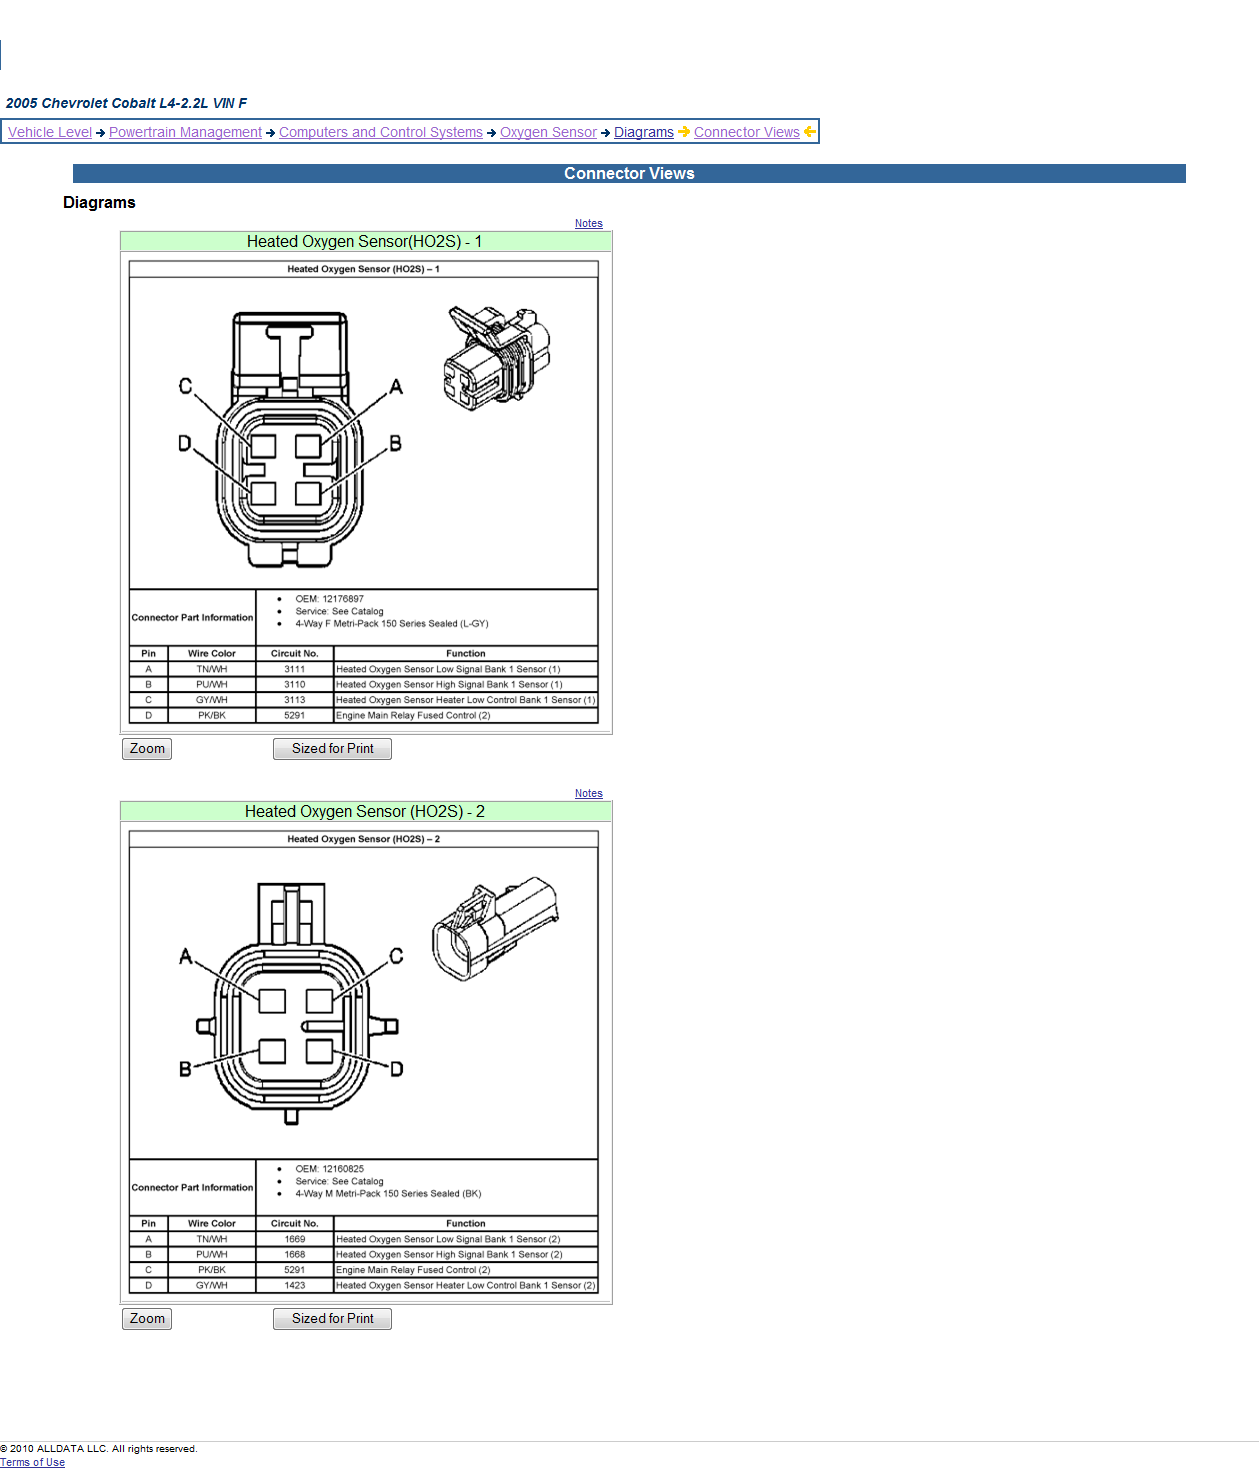 a4deda12a4f6d49137b2c3198e0ce0ff o2 sensor wiring diagram o2 sensor exhaust \u2022 wiring diagrams j 1993 F150 Code Reader at gsmx.co